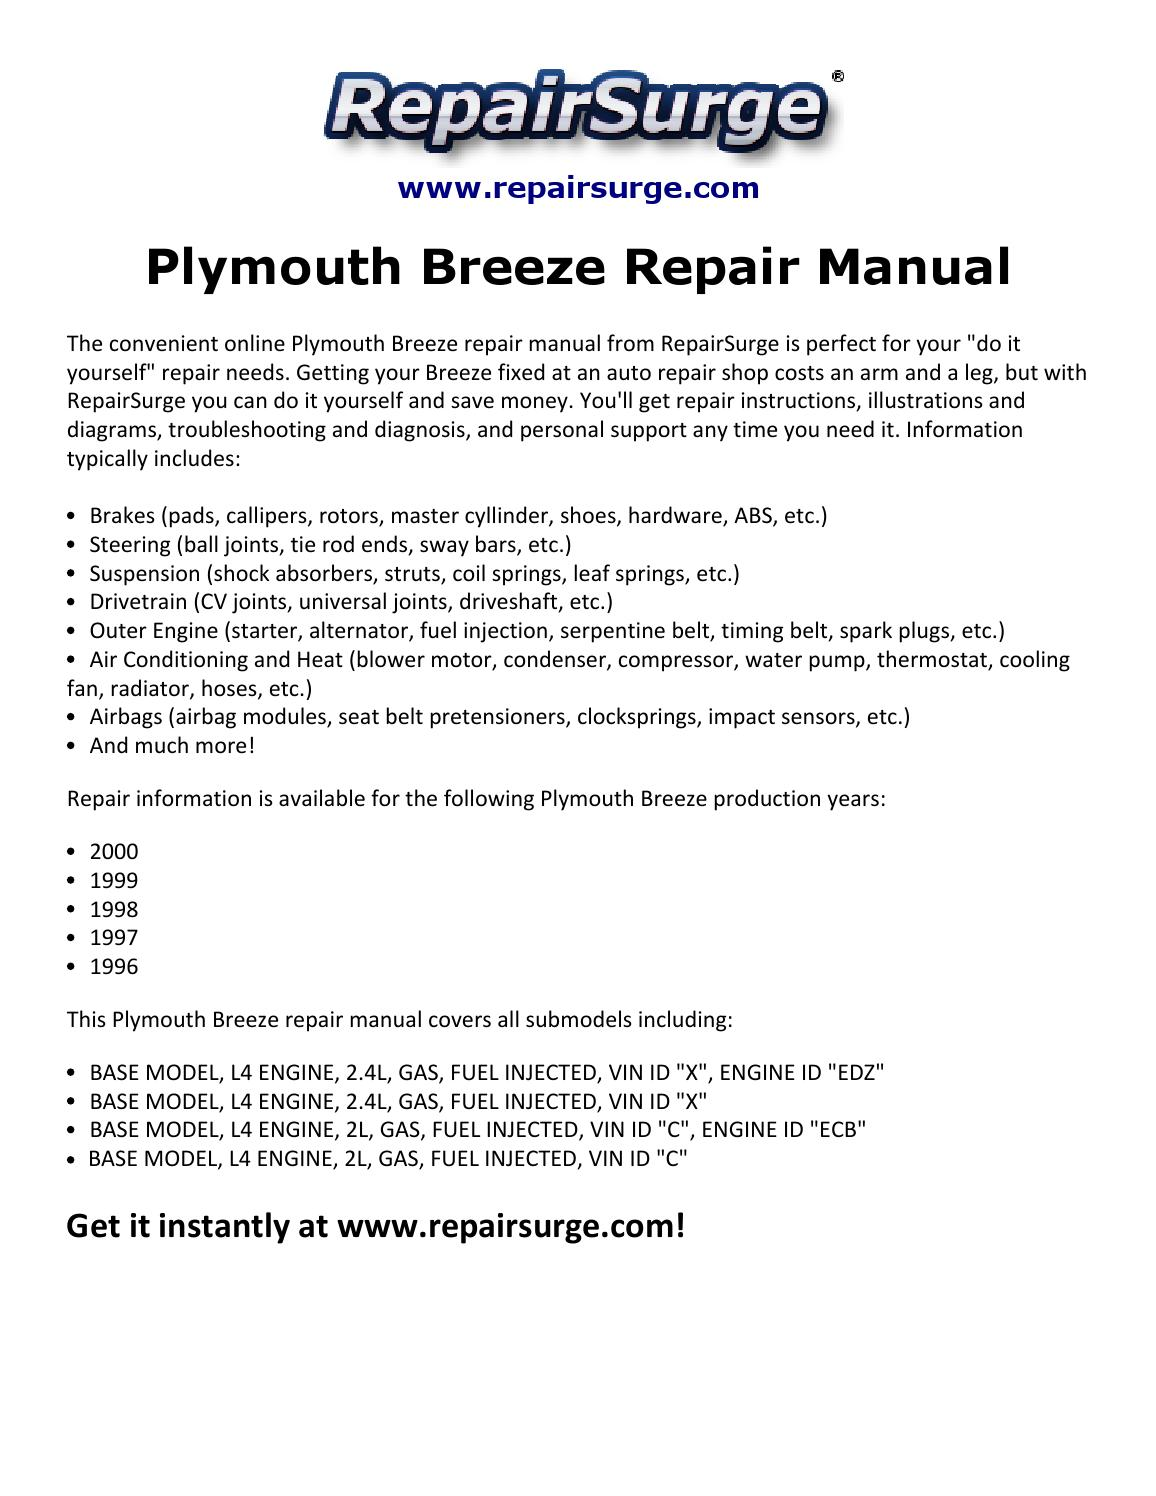 hight resolution of plymouth breeze repair manual 1996 2000 by david williams issuu